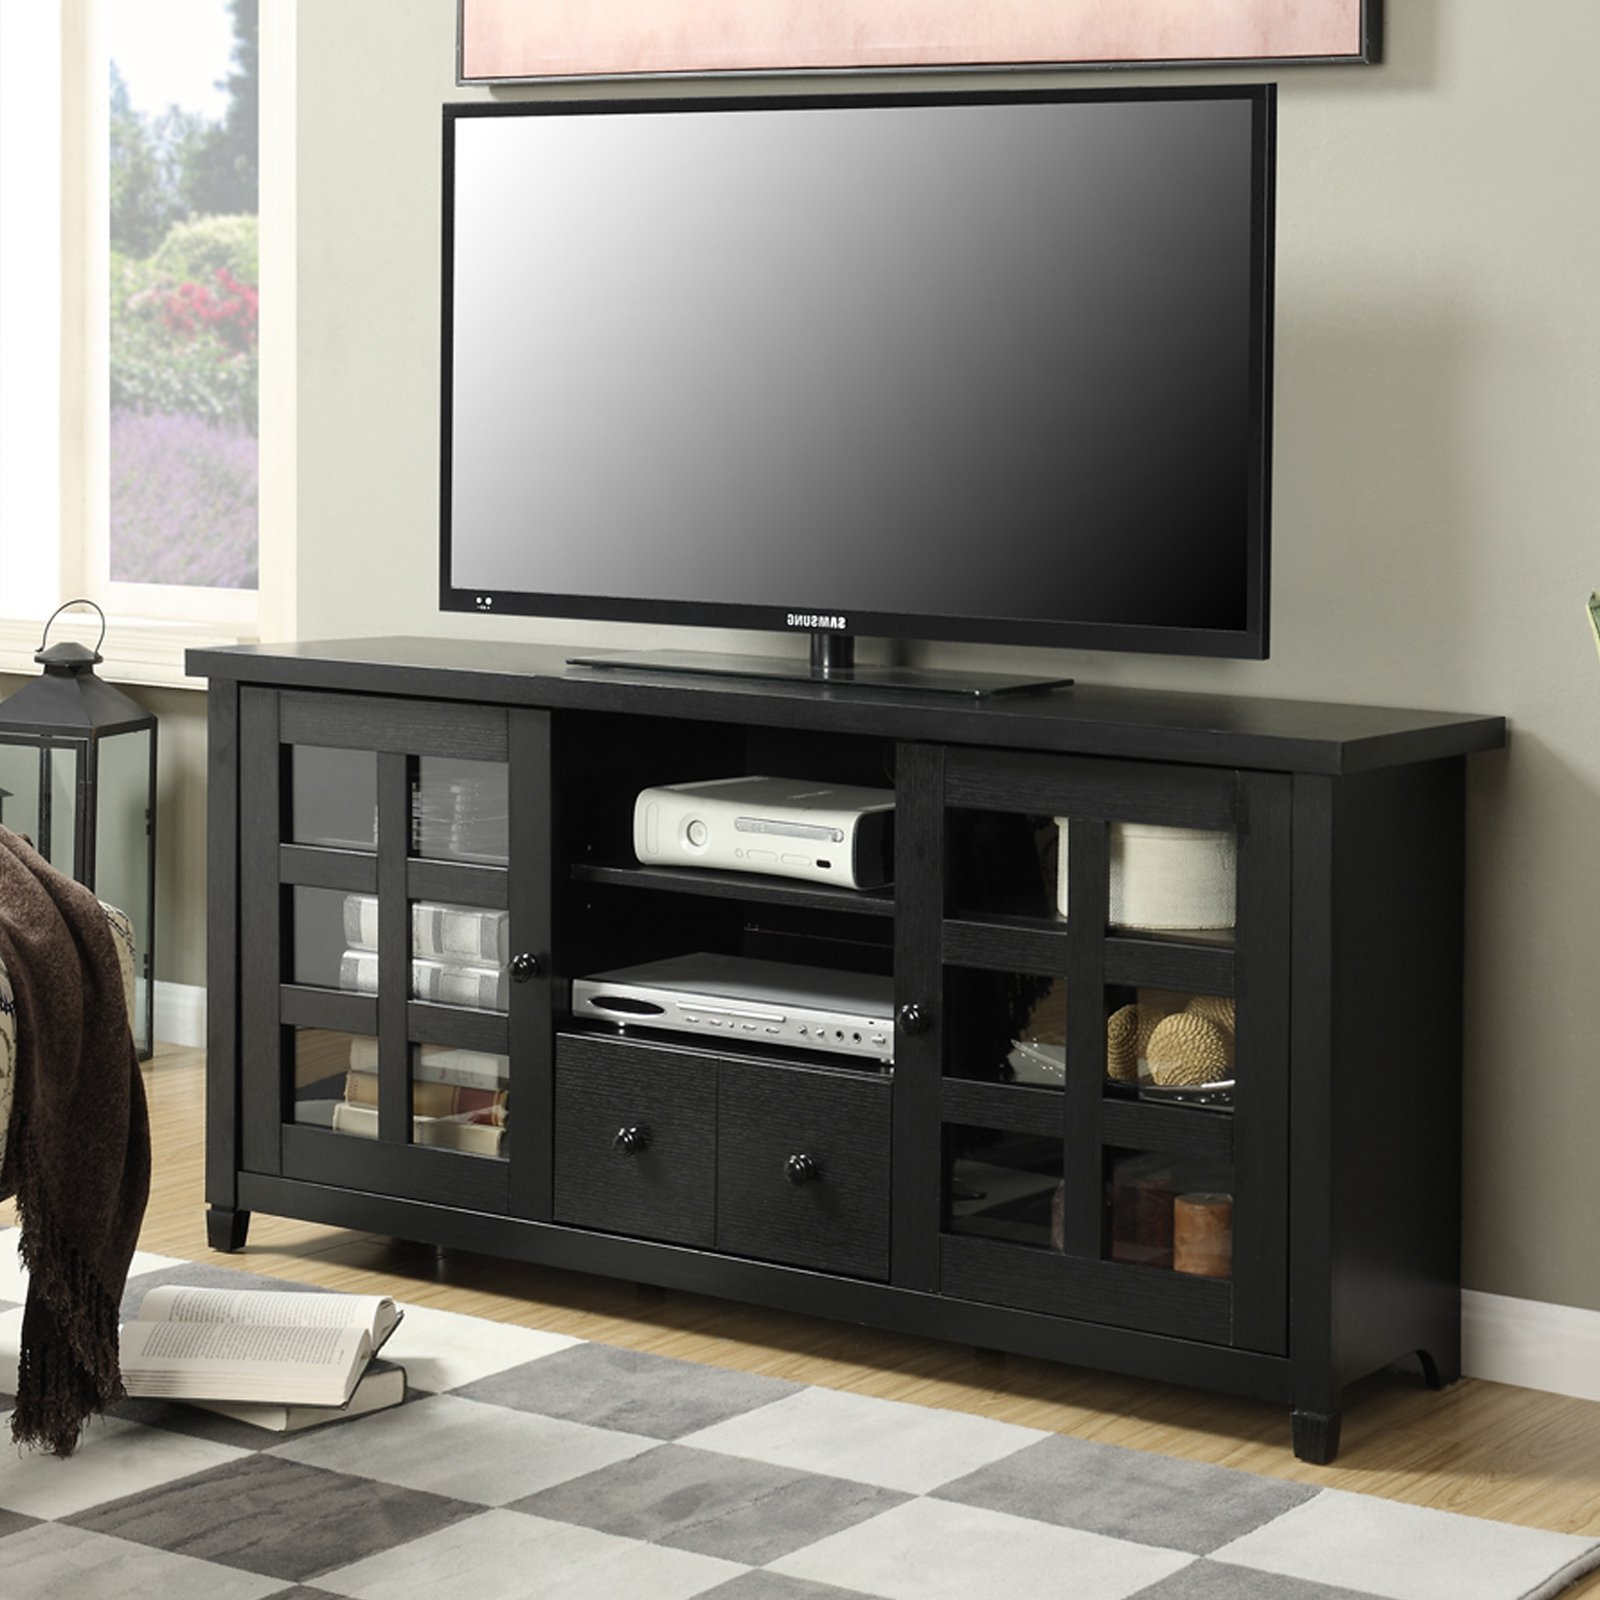 Tv Stands & Entertainment Centers | Hayneedle Intended For Laurent 50 Inch Tv Stands (Gallery 11 of 20)